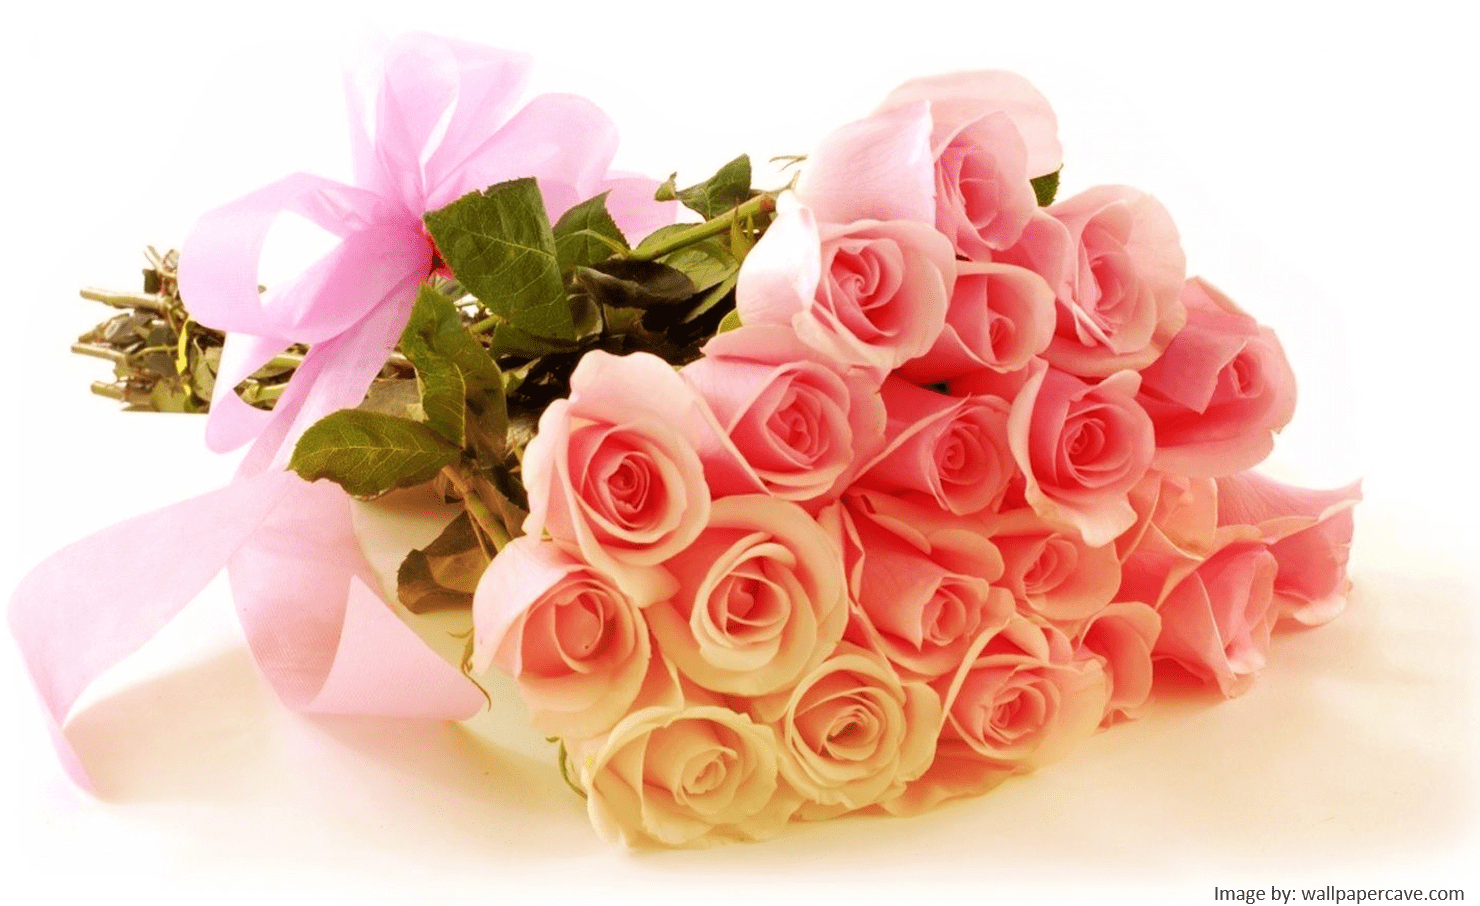 Bouquet of flowers for Valentine's Day